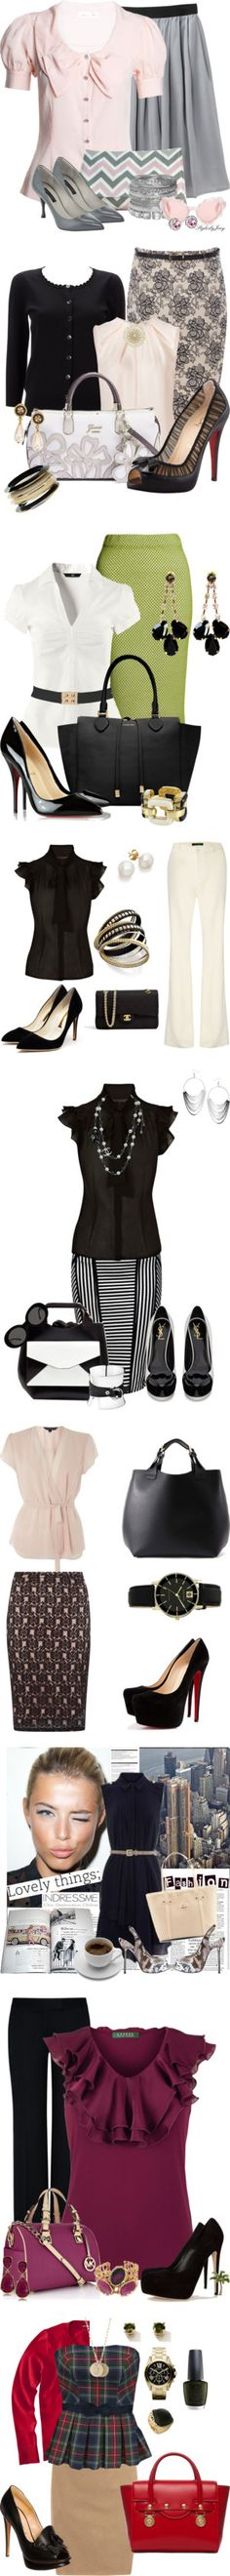 """Work Wear 48"" by kimsteenkamp ❤ liked on Polyvore"